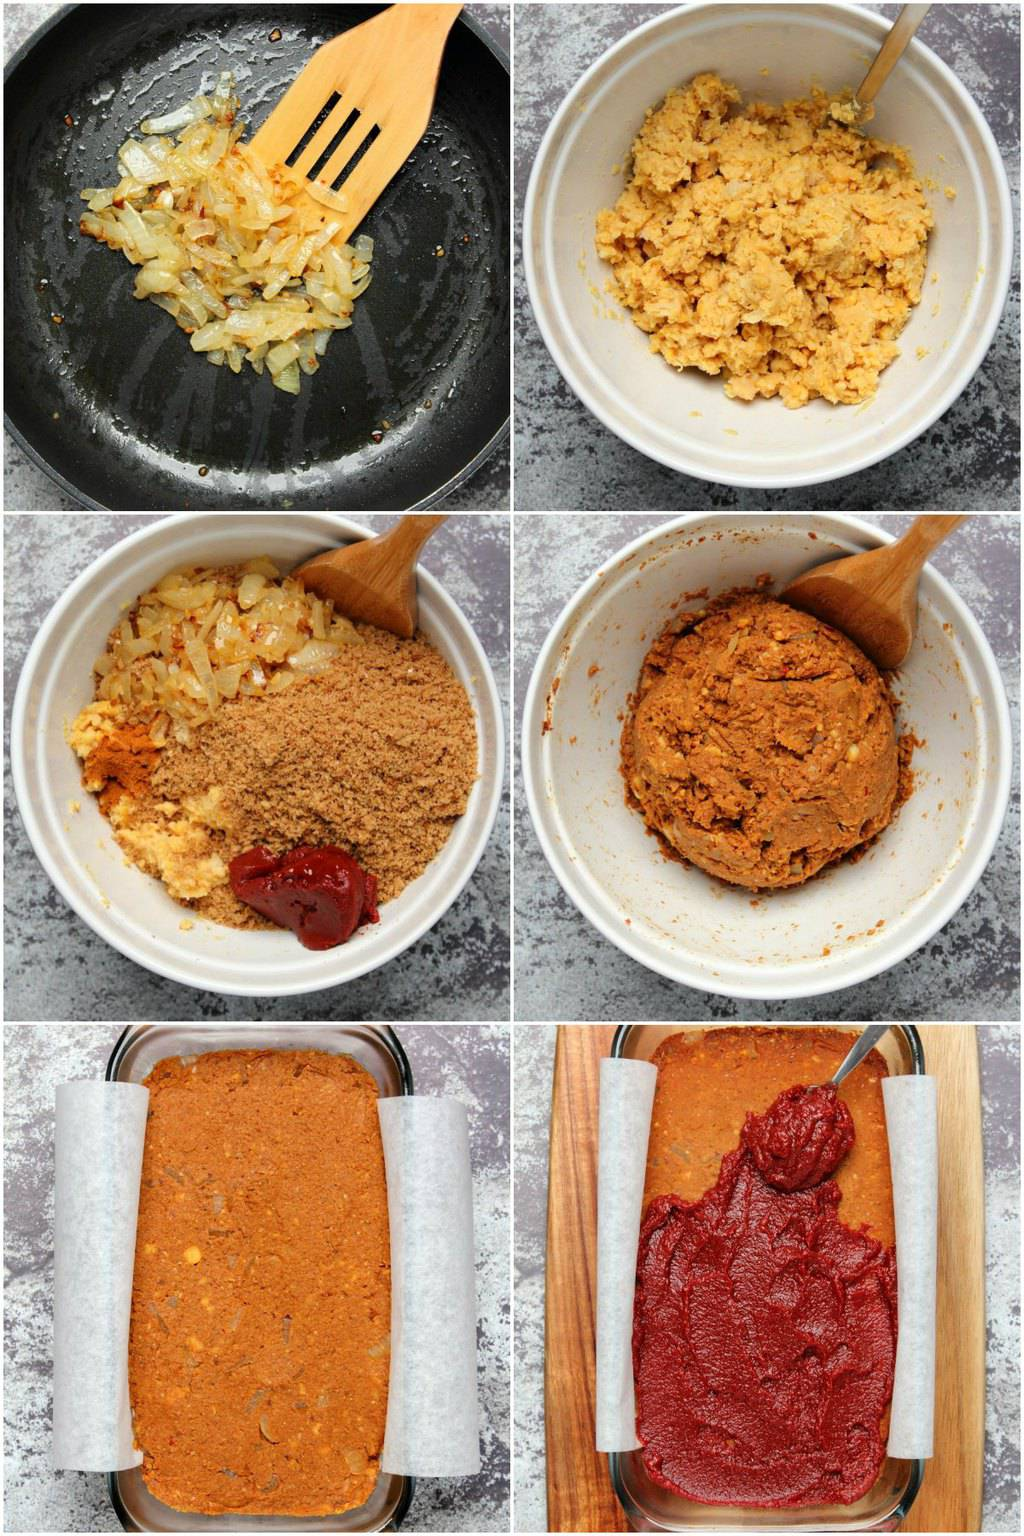 Step by step process photos of making vegan meatloaf.